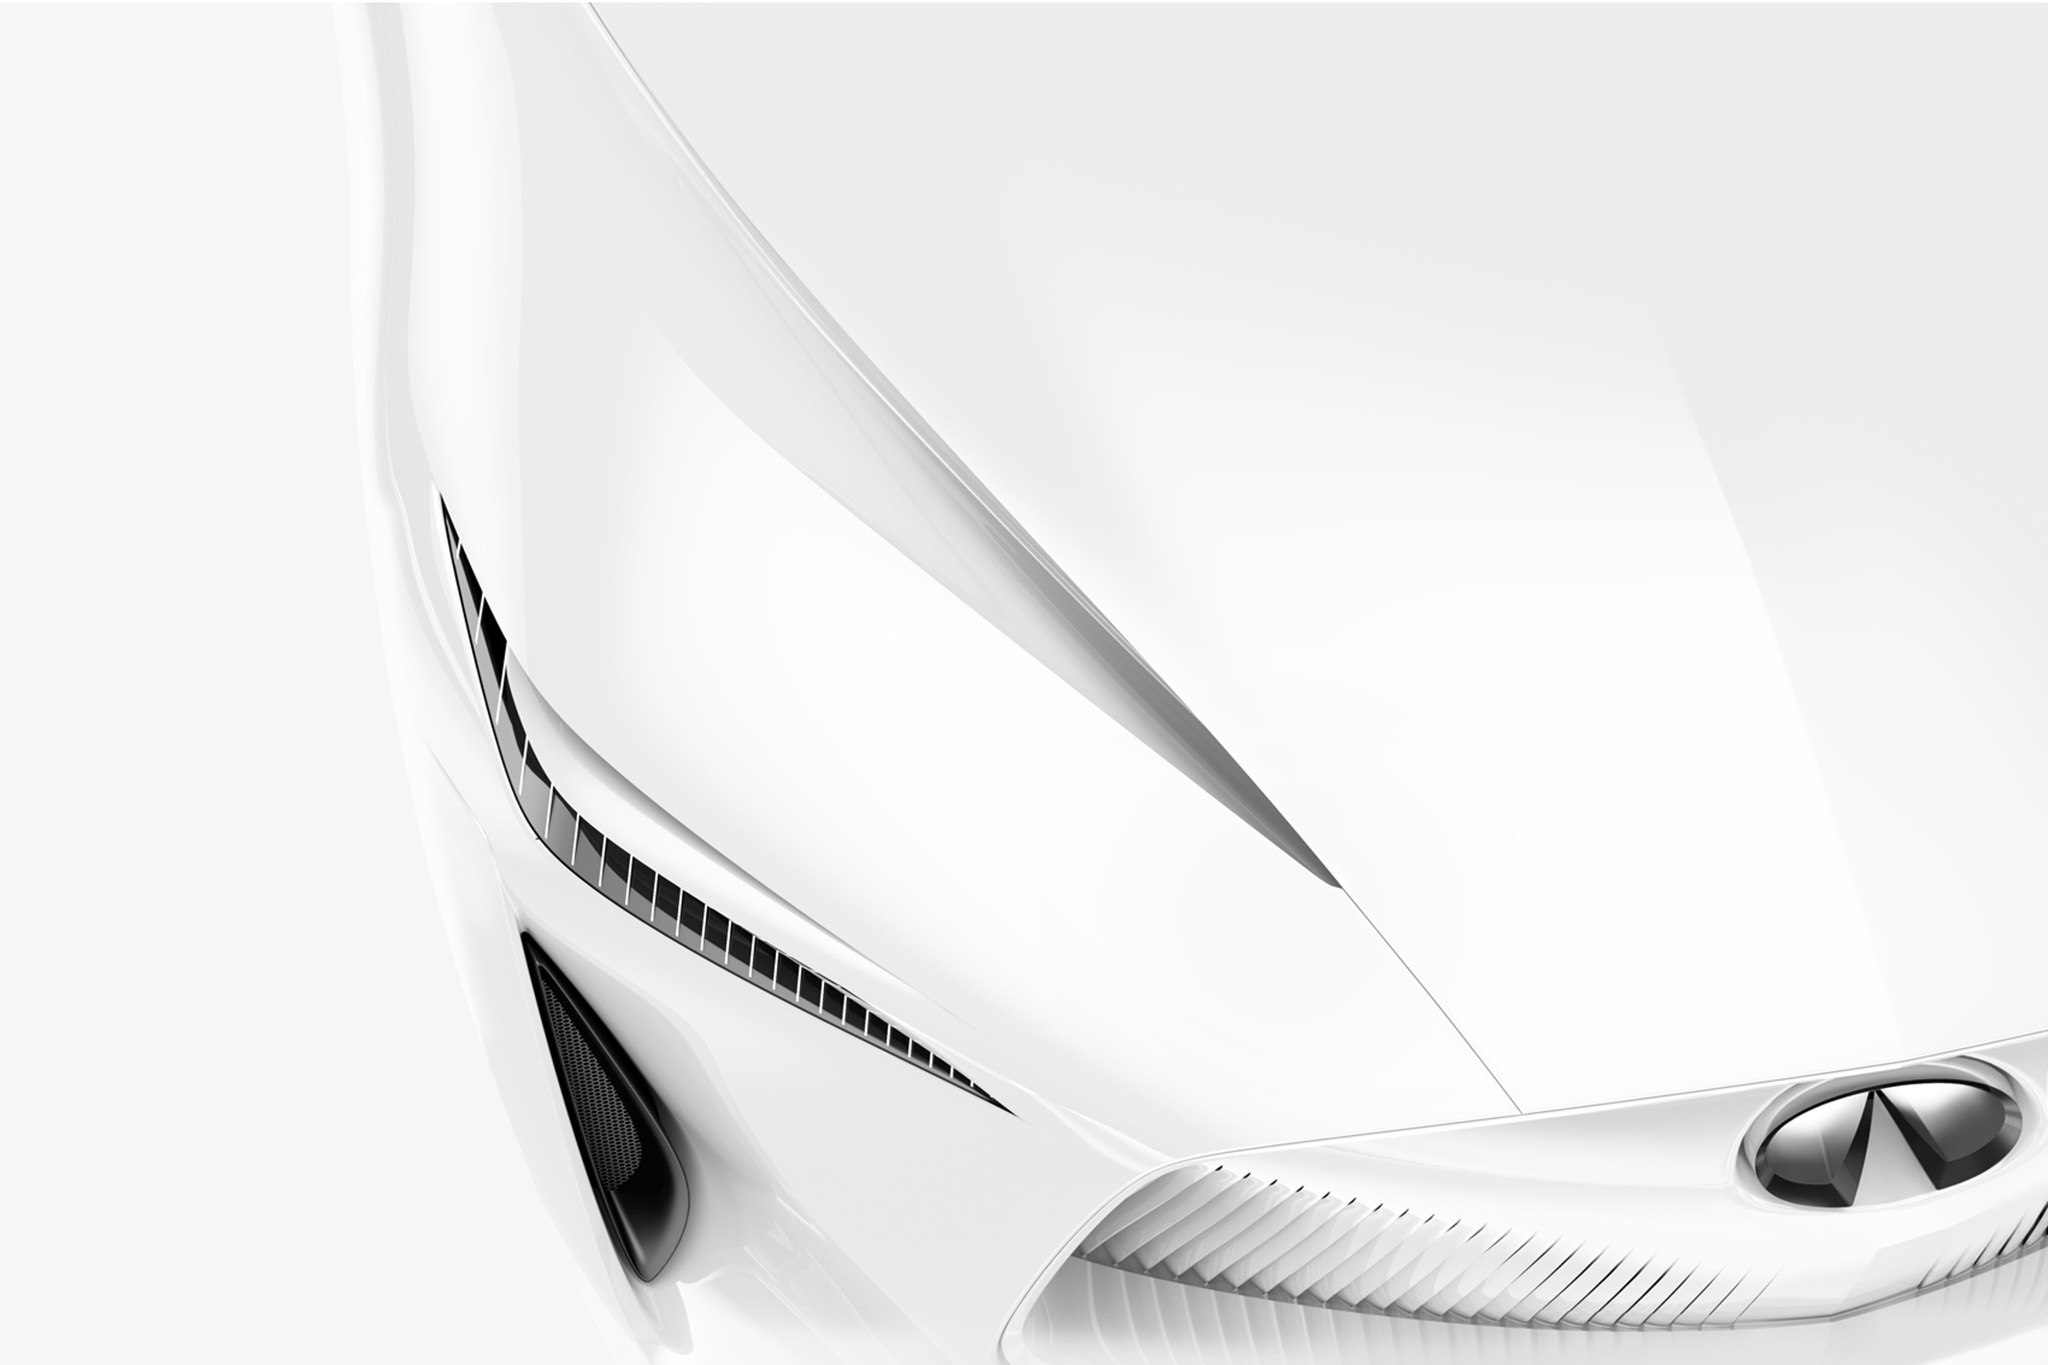 Infiniti Drops A Bomb With New Sedan Concept Teaser — NAIAS